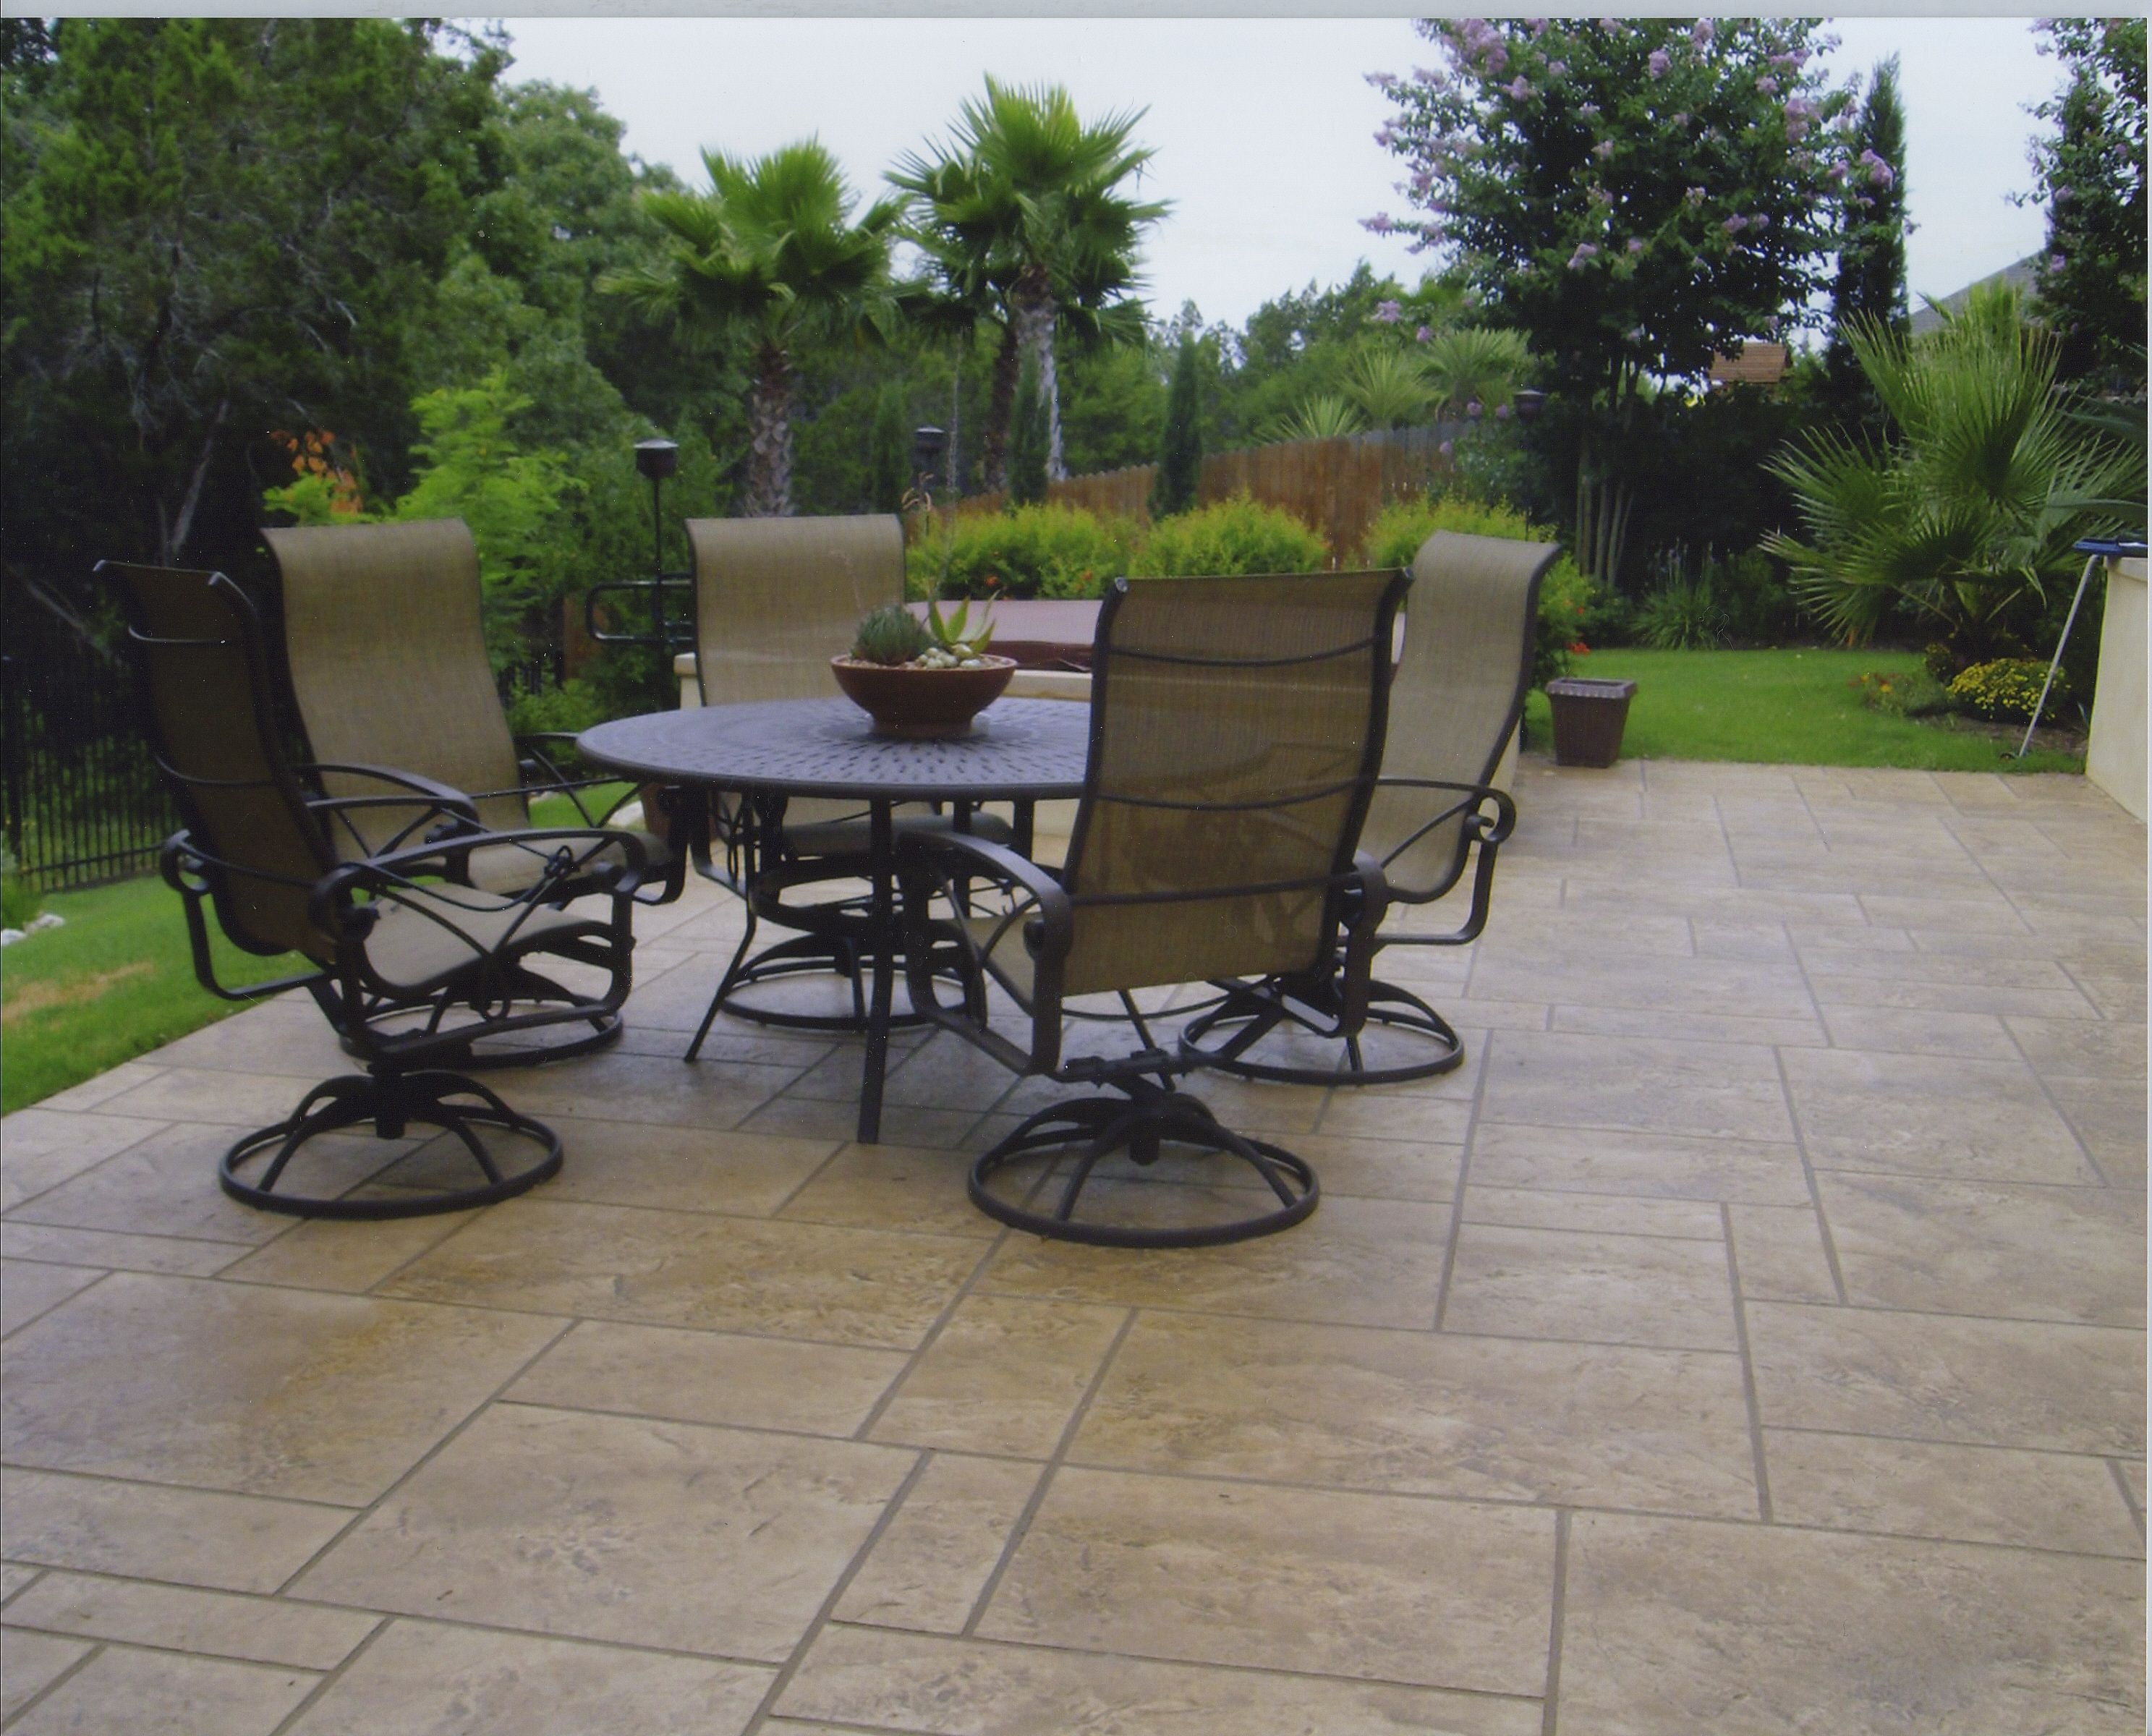 A stamped concrete patio so durable it can withstand the effects